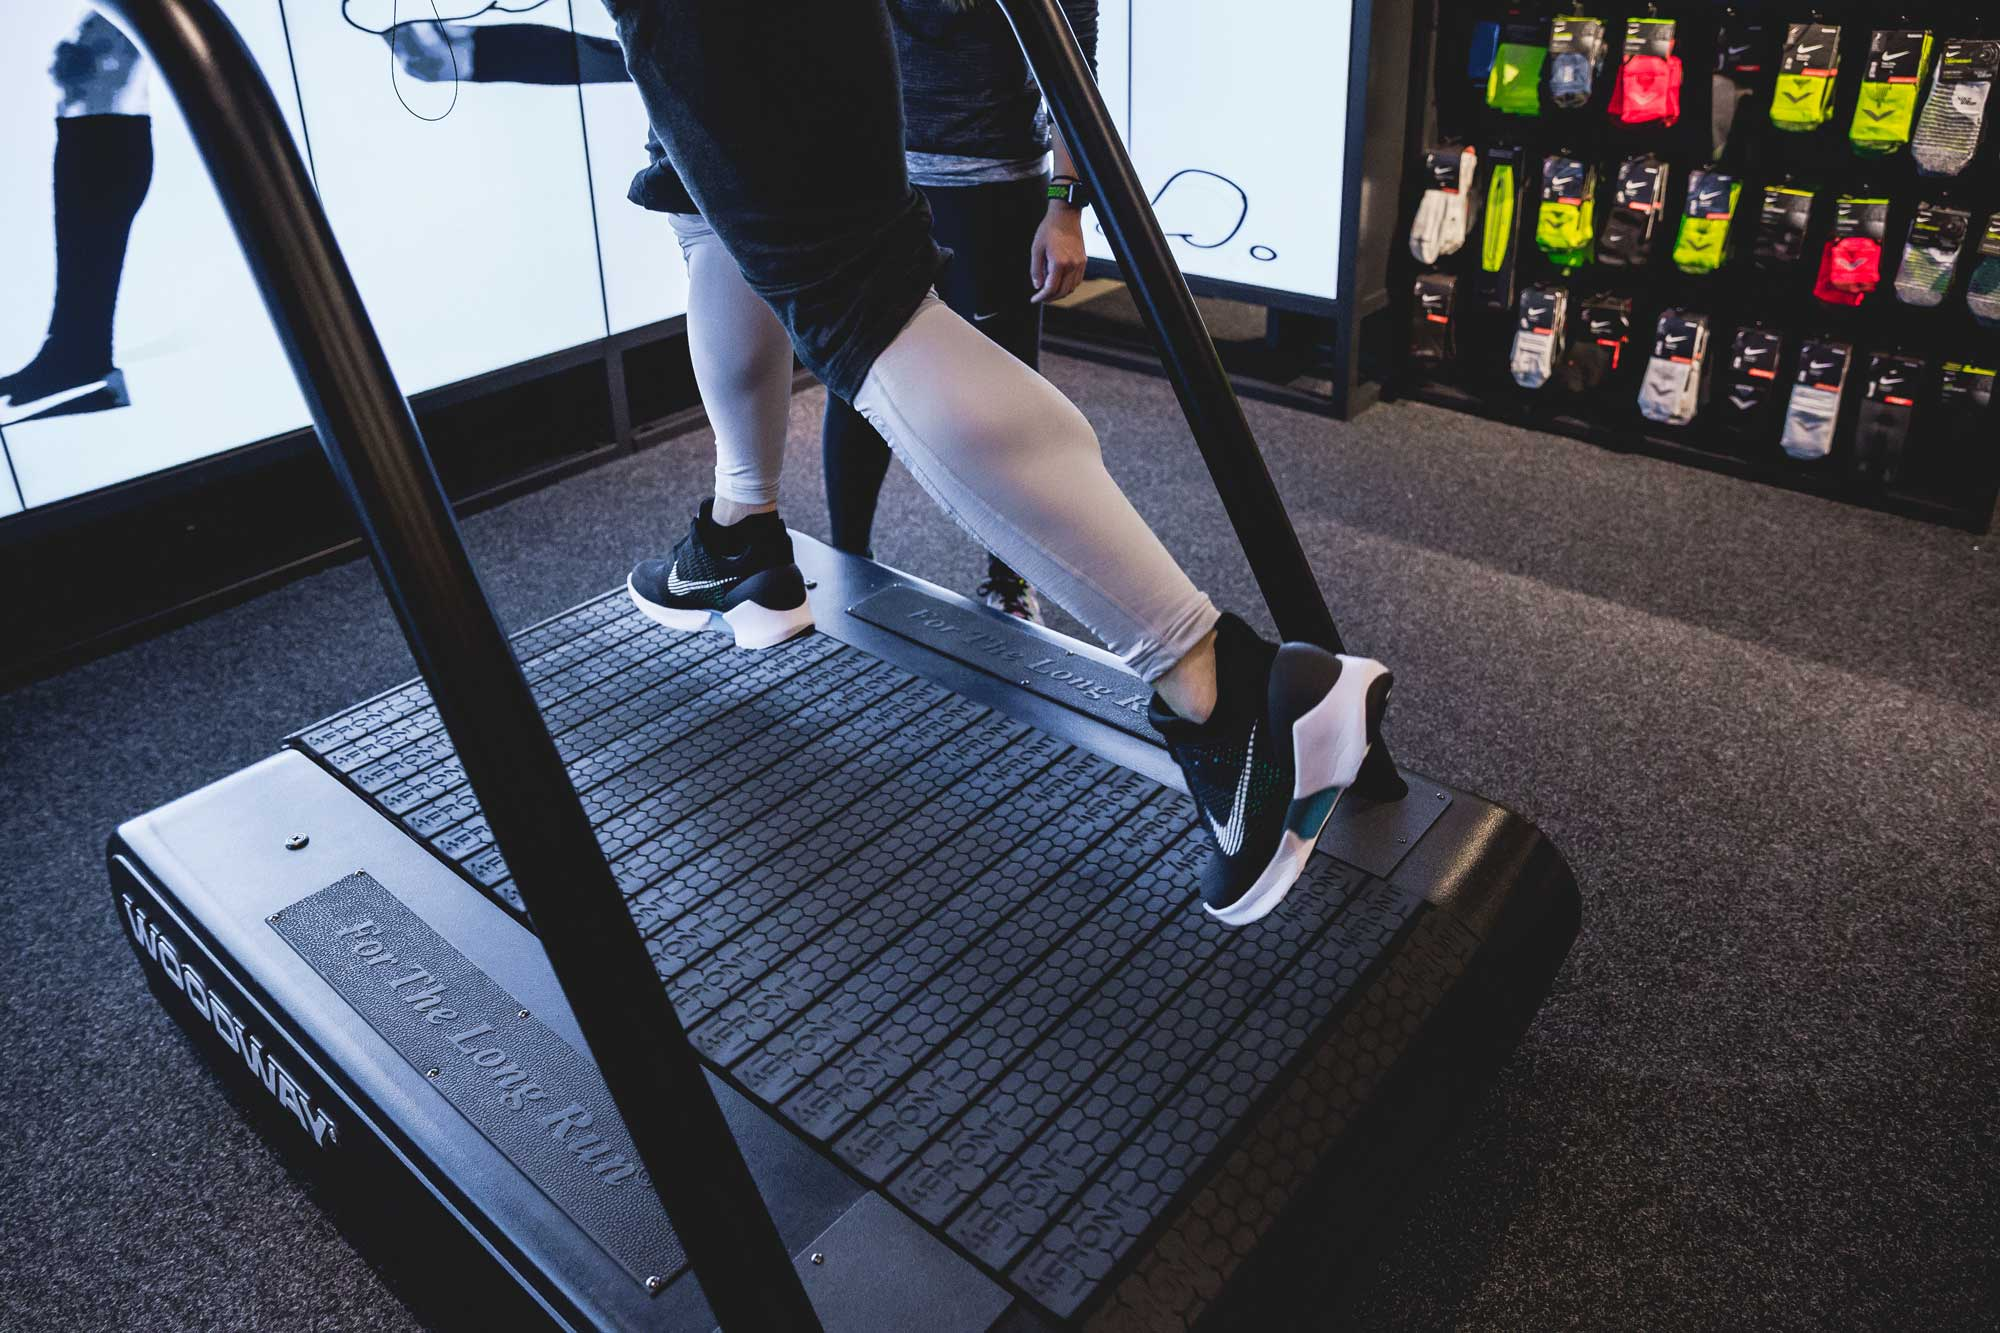 The Men's Fitness team tests the HyperAdapts on a Woodway treadmill. Photo courtesy of Nike.